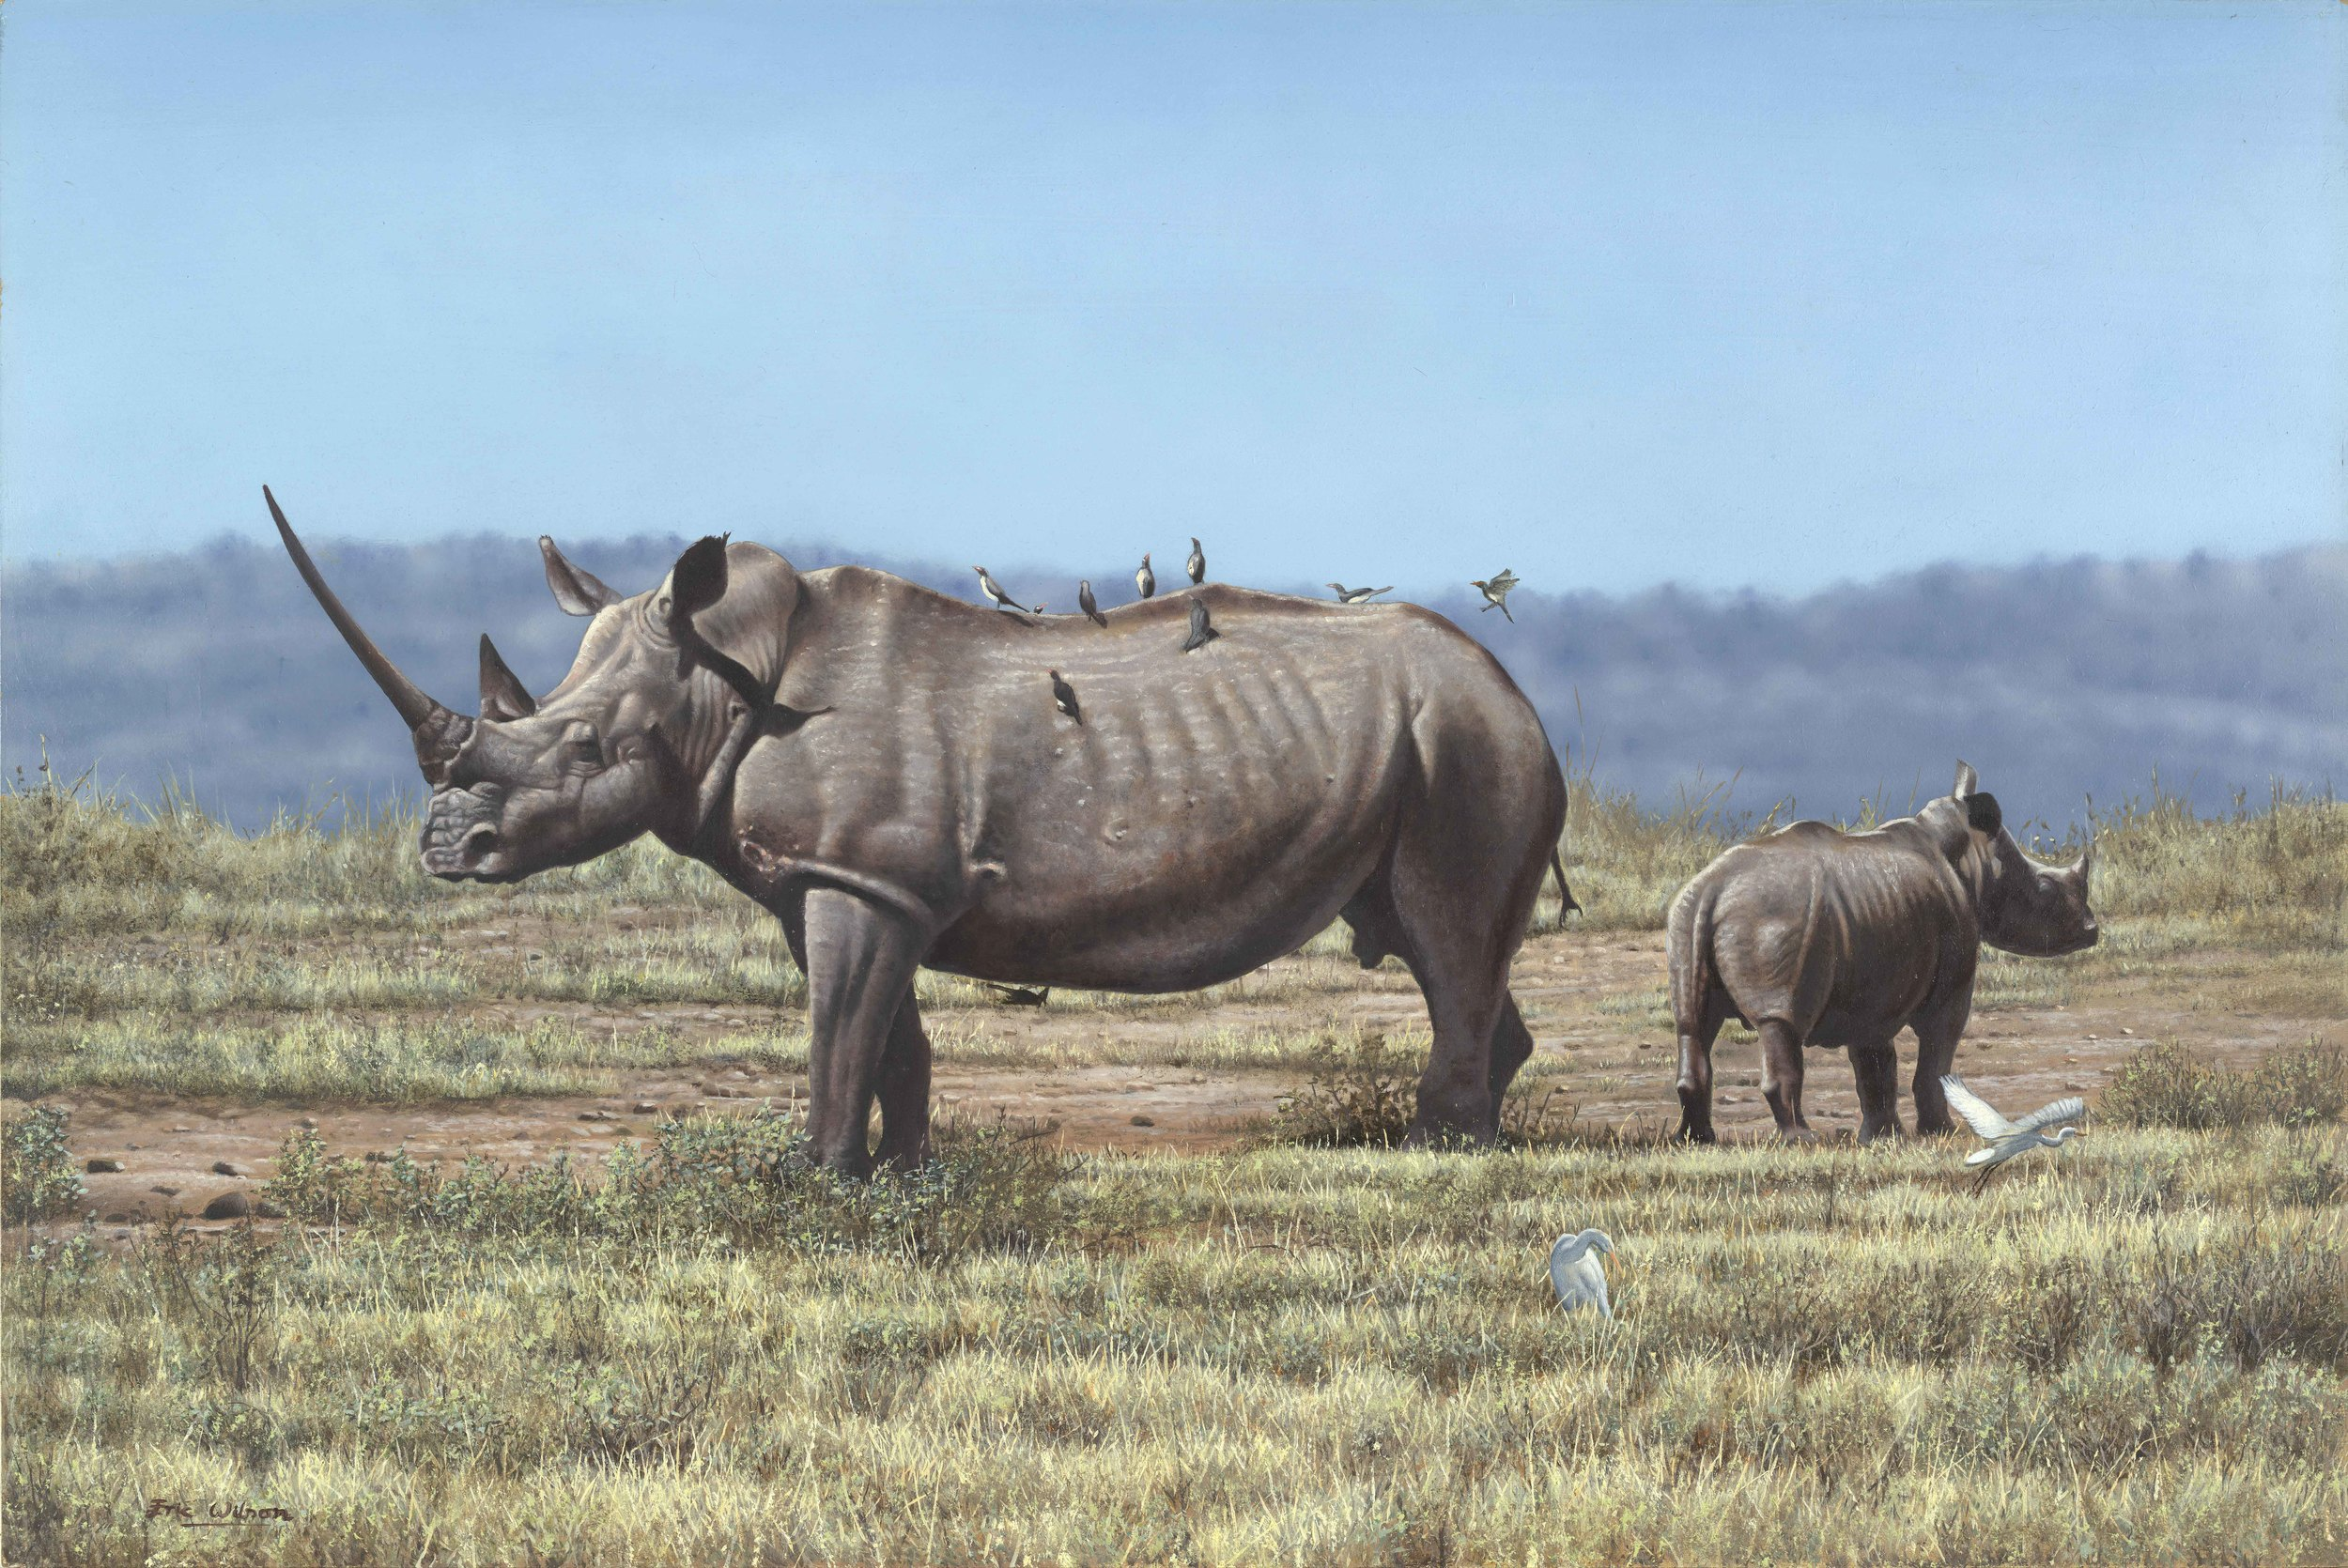 Rhino Painting. Oil painting of a rhino with calf by wildlife artist Eric Wilson. Oil on board. Original rhino painting for sale.